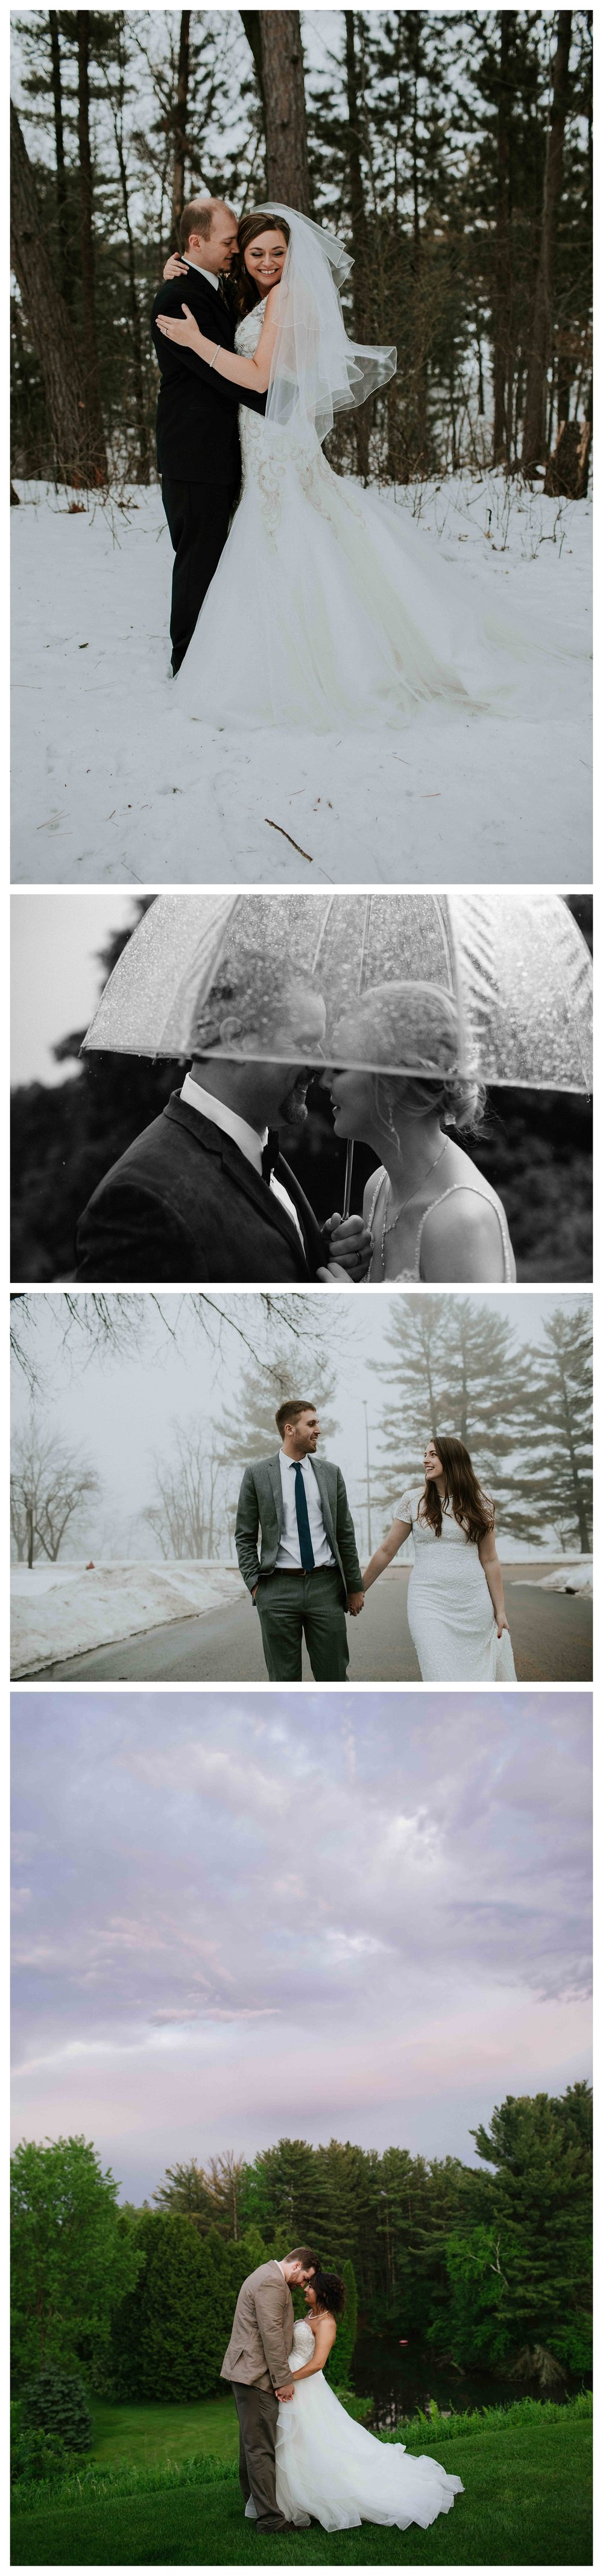 How to Get Good Wedding Pictures Wisconsin Wedding Photographer Chloe Ann Photography Wedding Planning and Inspiration